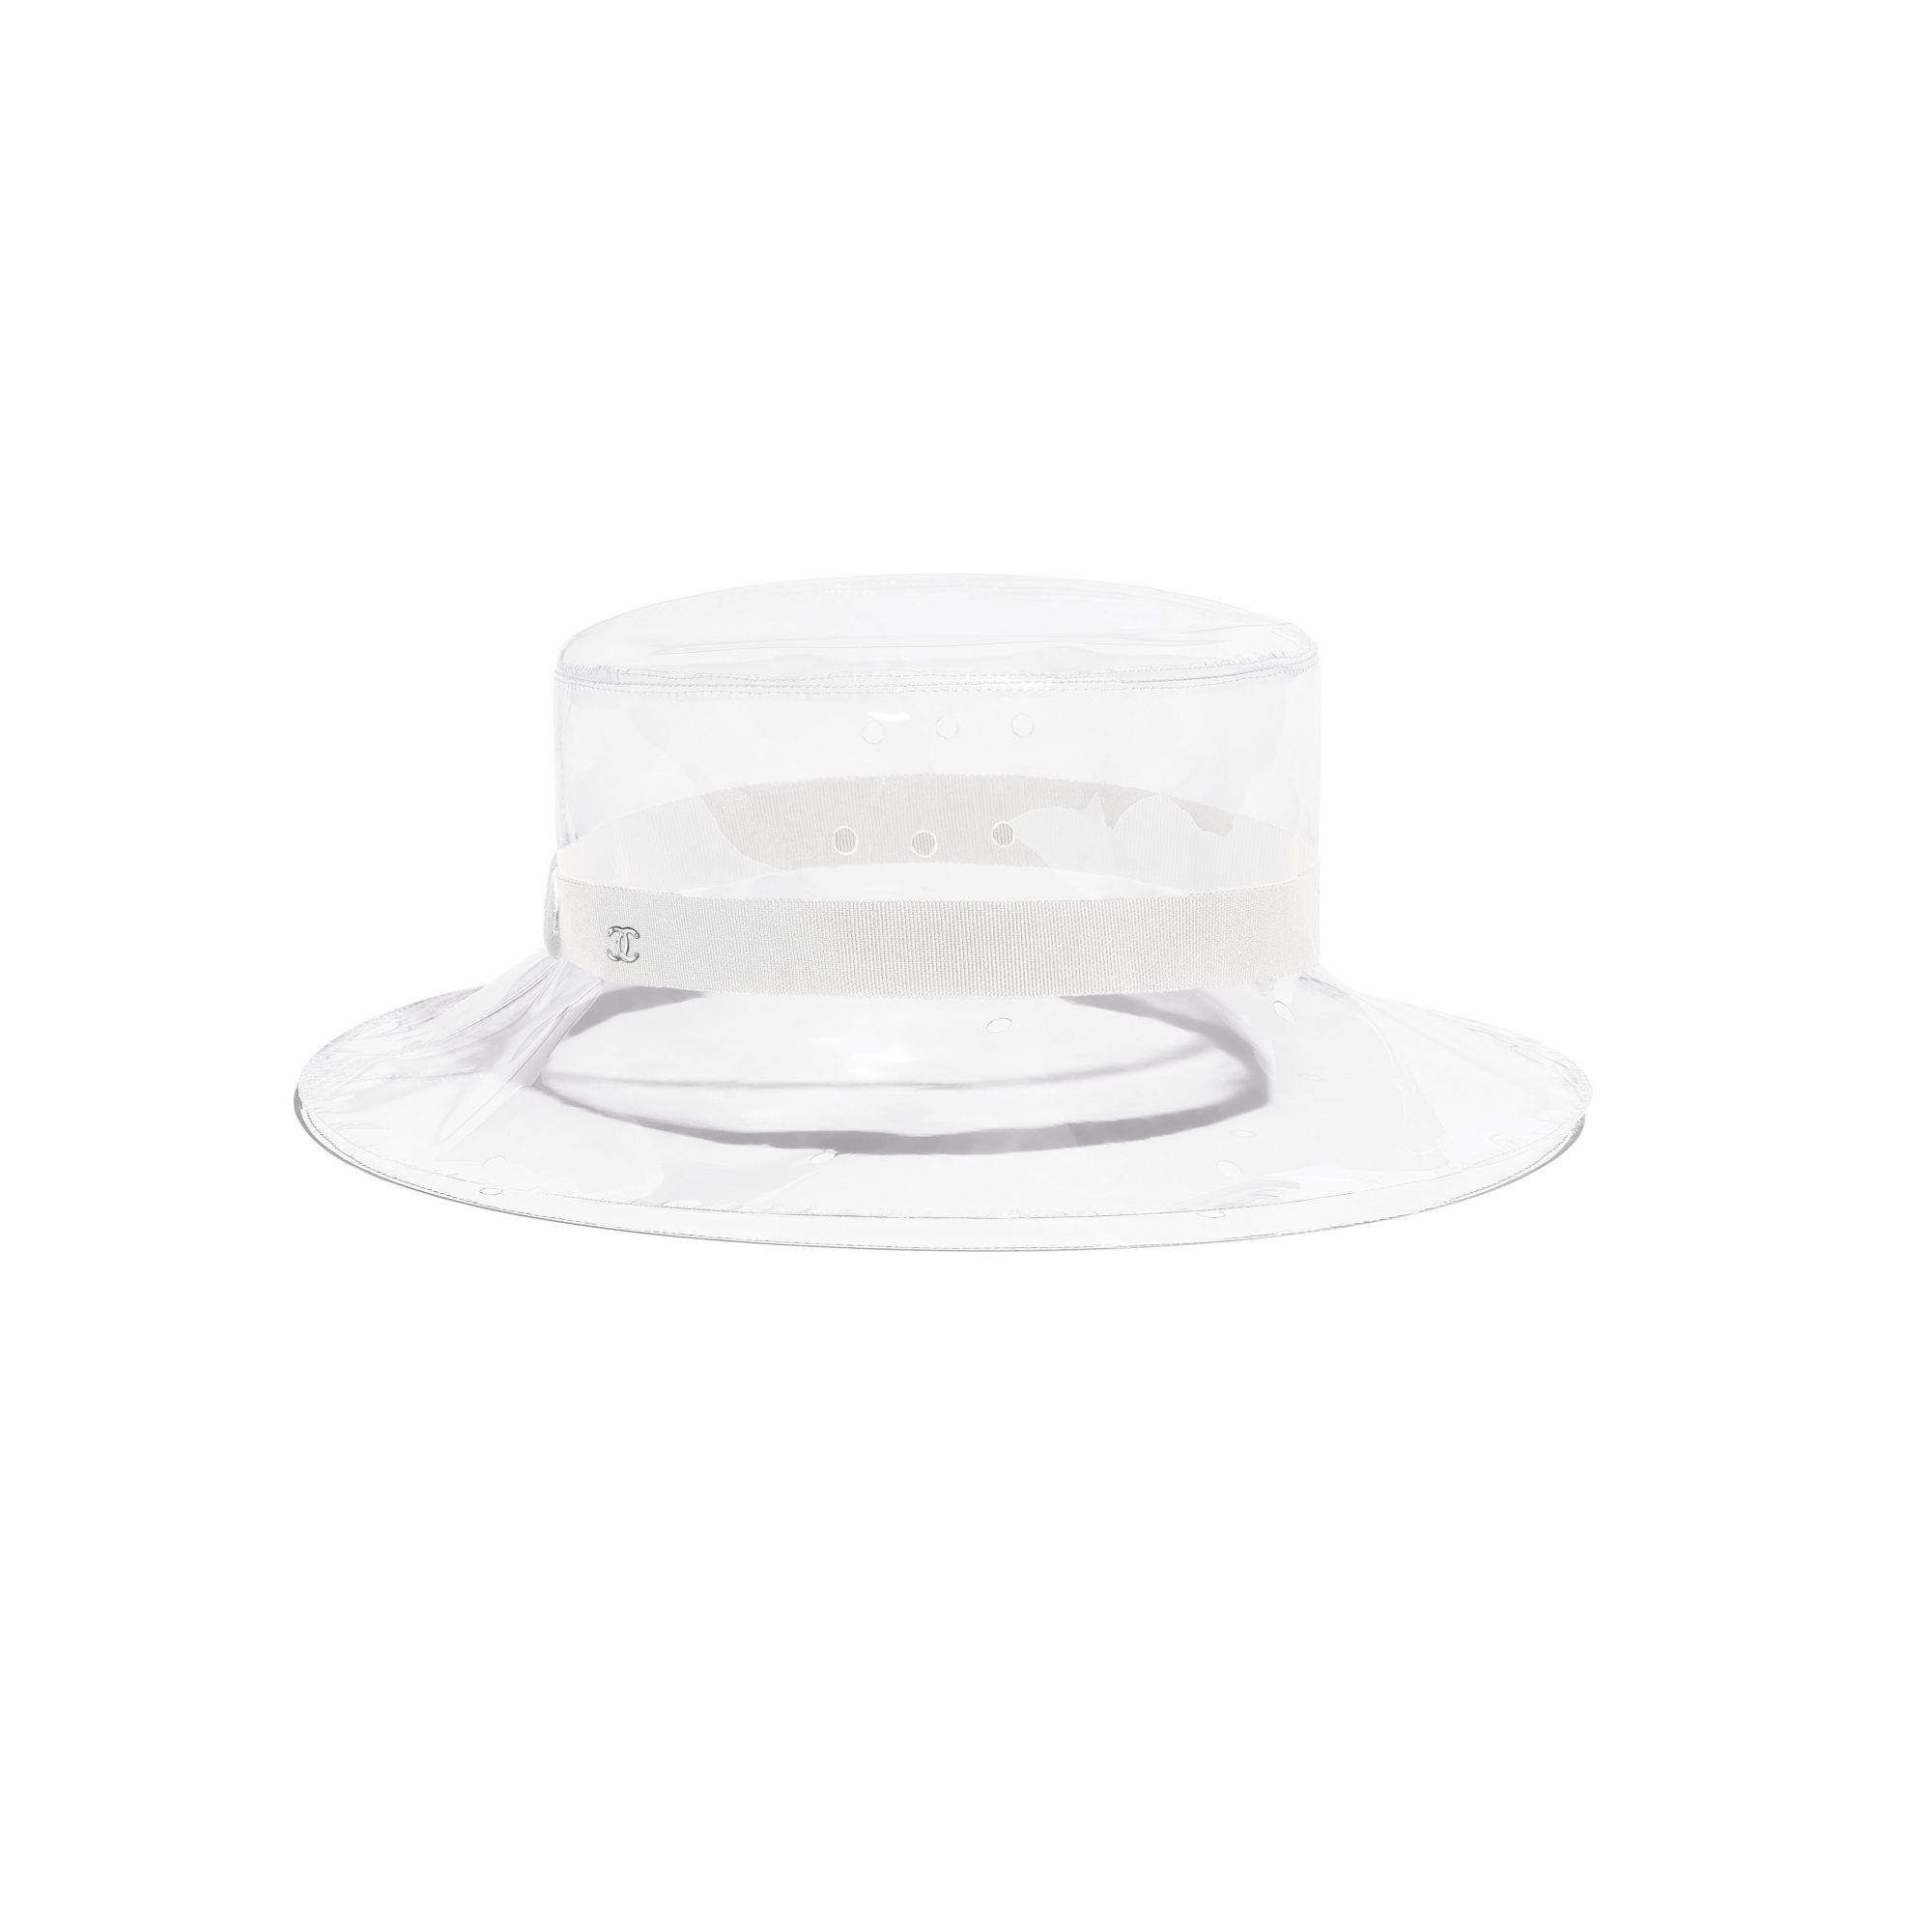 Hat in transparent PVC and white grosgrain